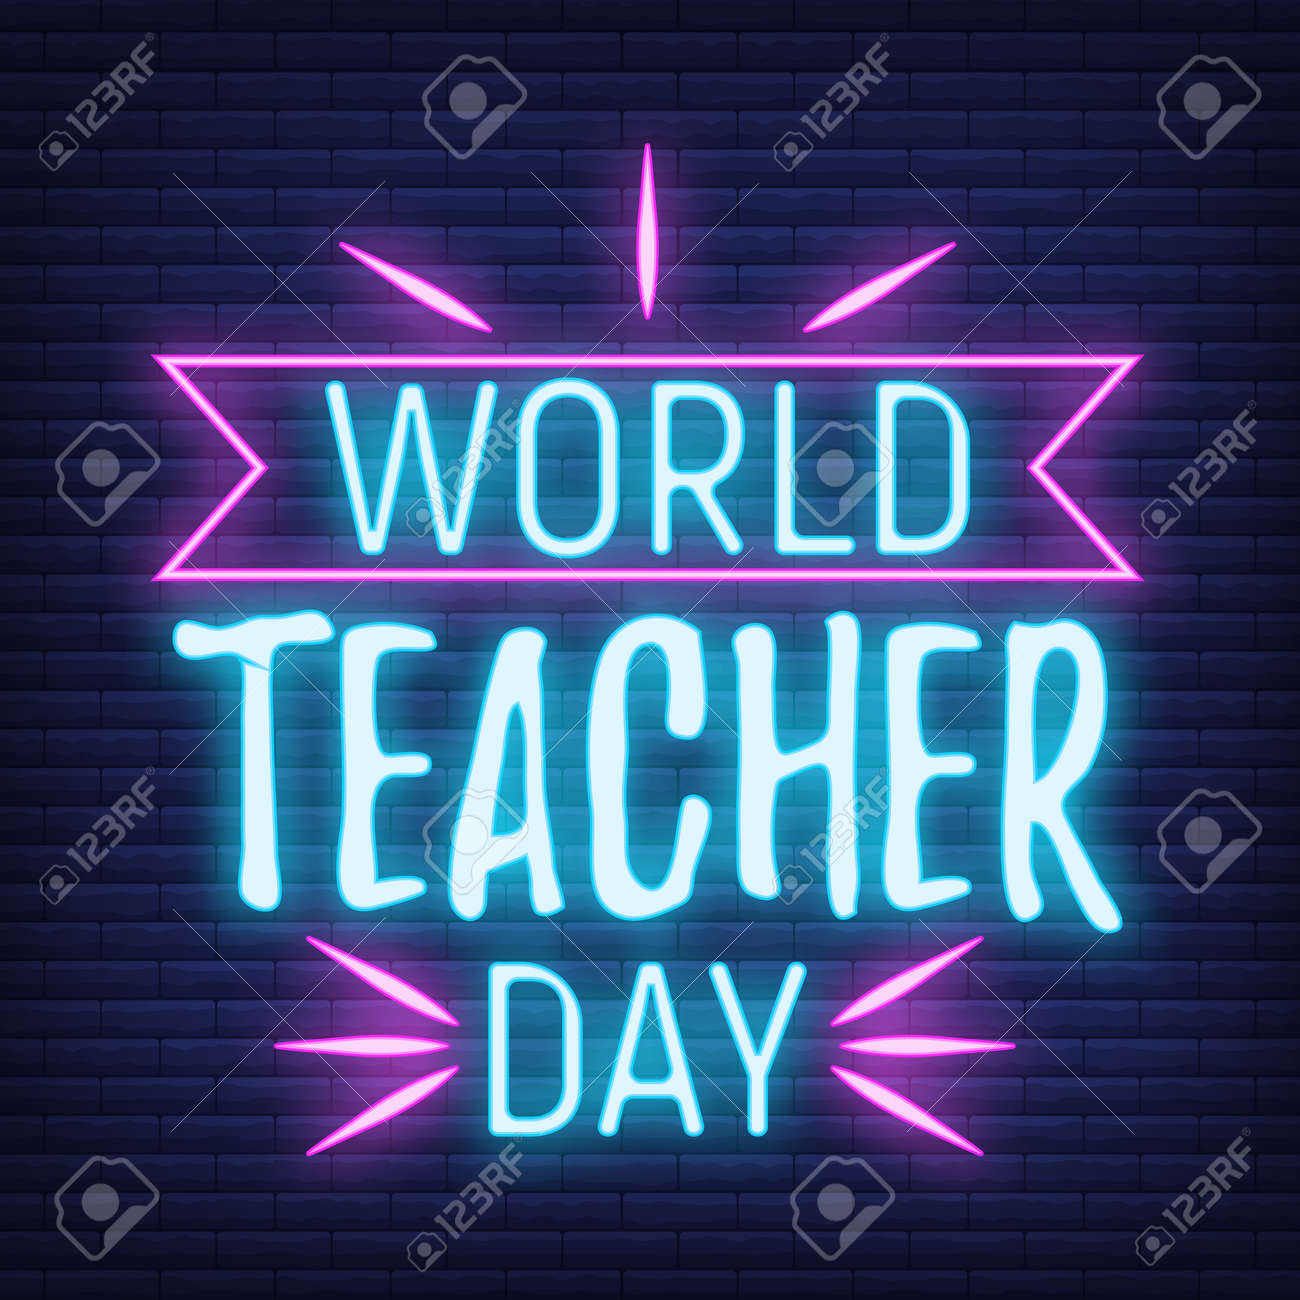 Concept neon best teacher day holiday font text quote, calligraphic inspiration celebration card flat vector illustration, decoration design label. World holiday, web banner internet page. - 166412681